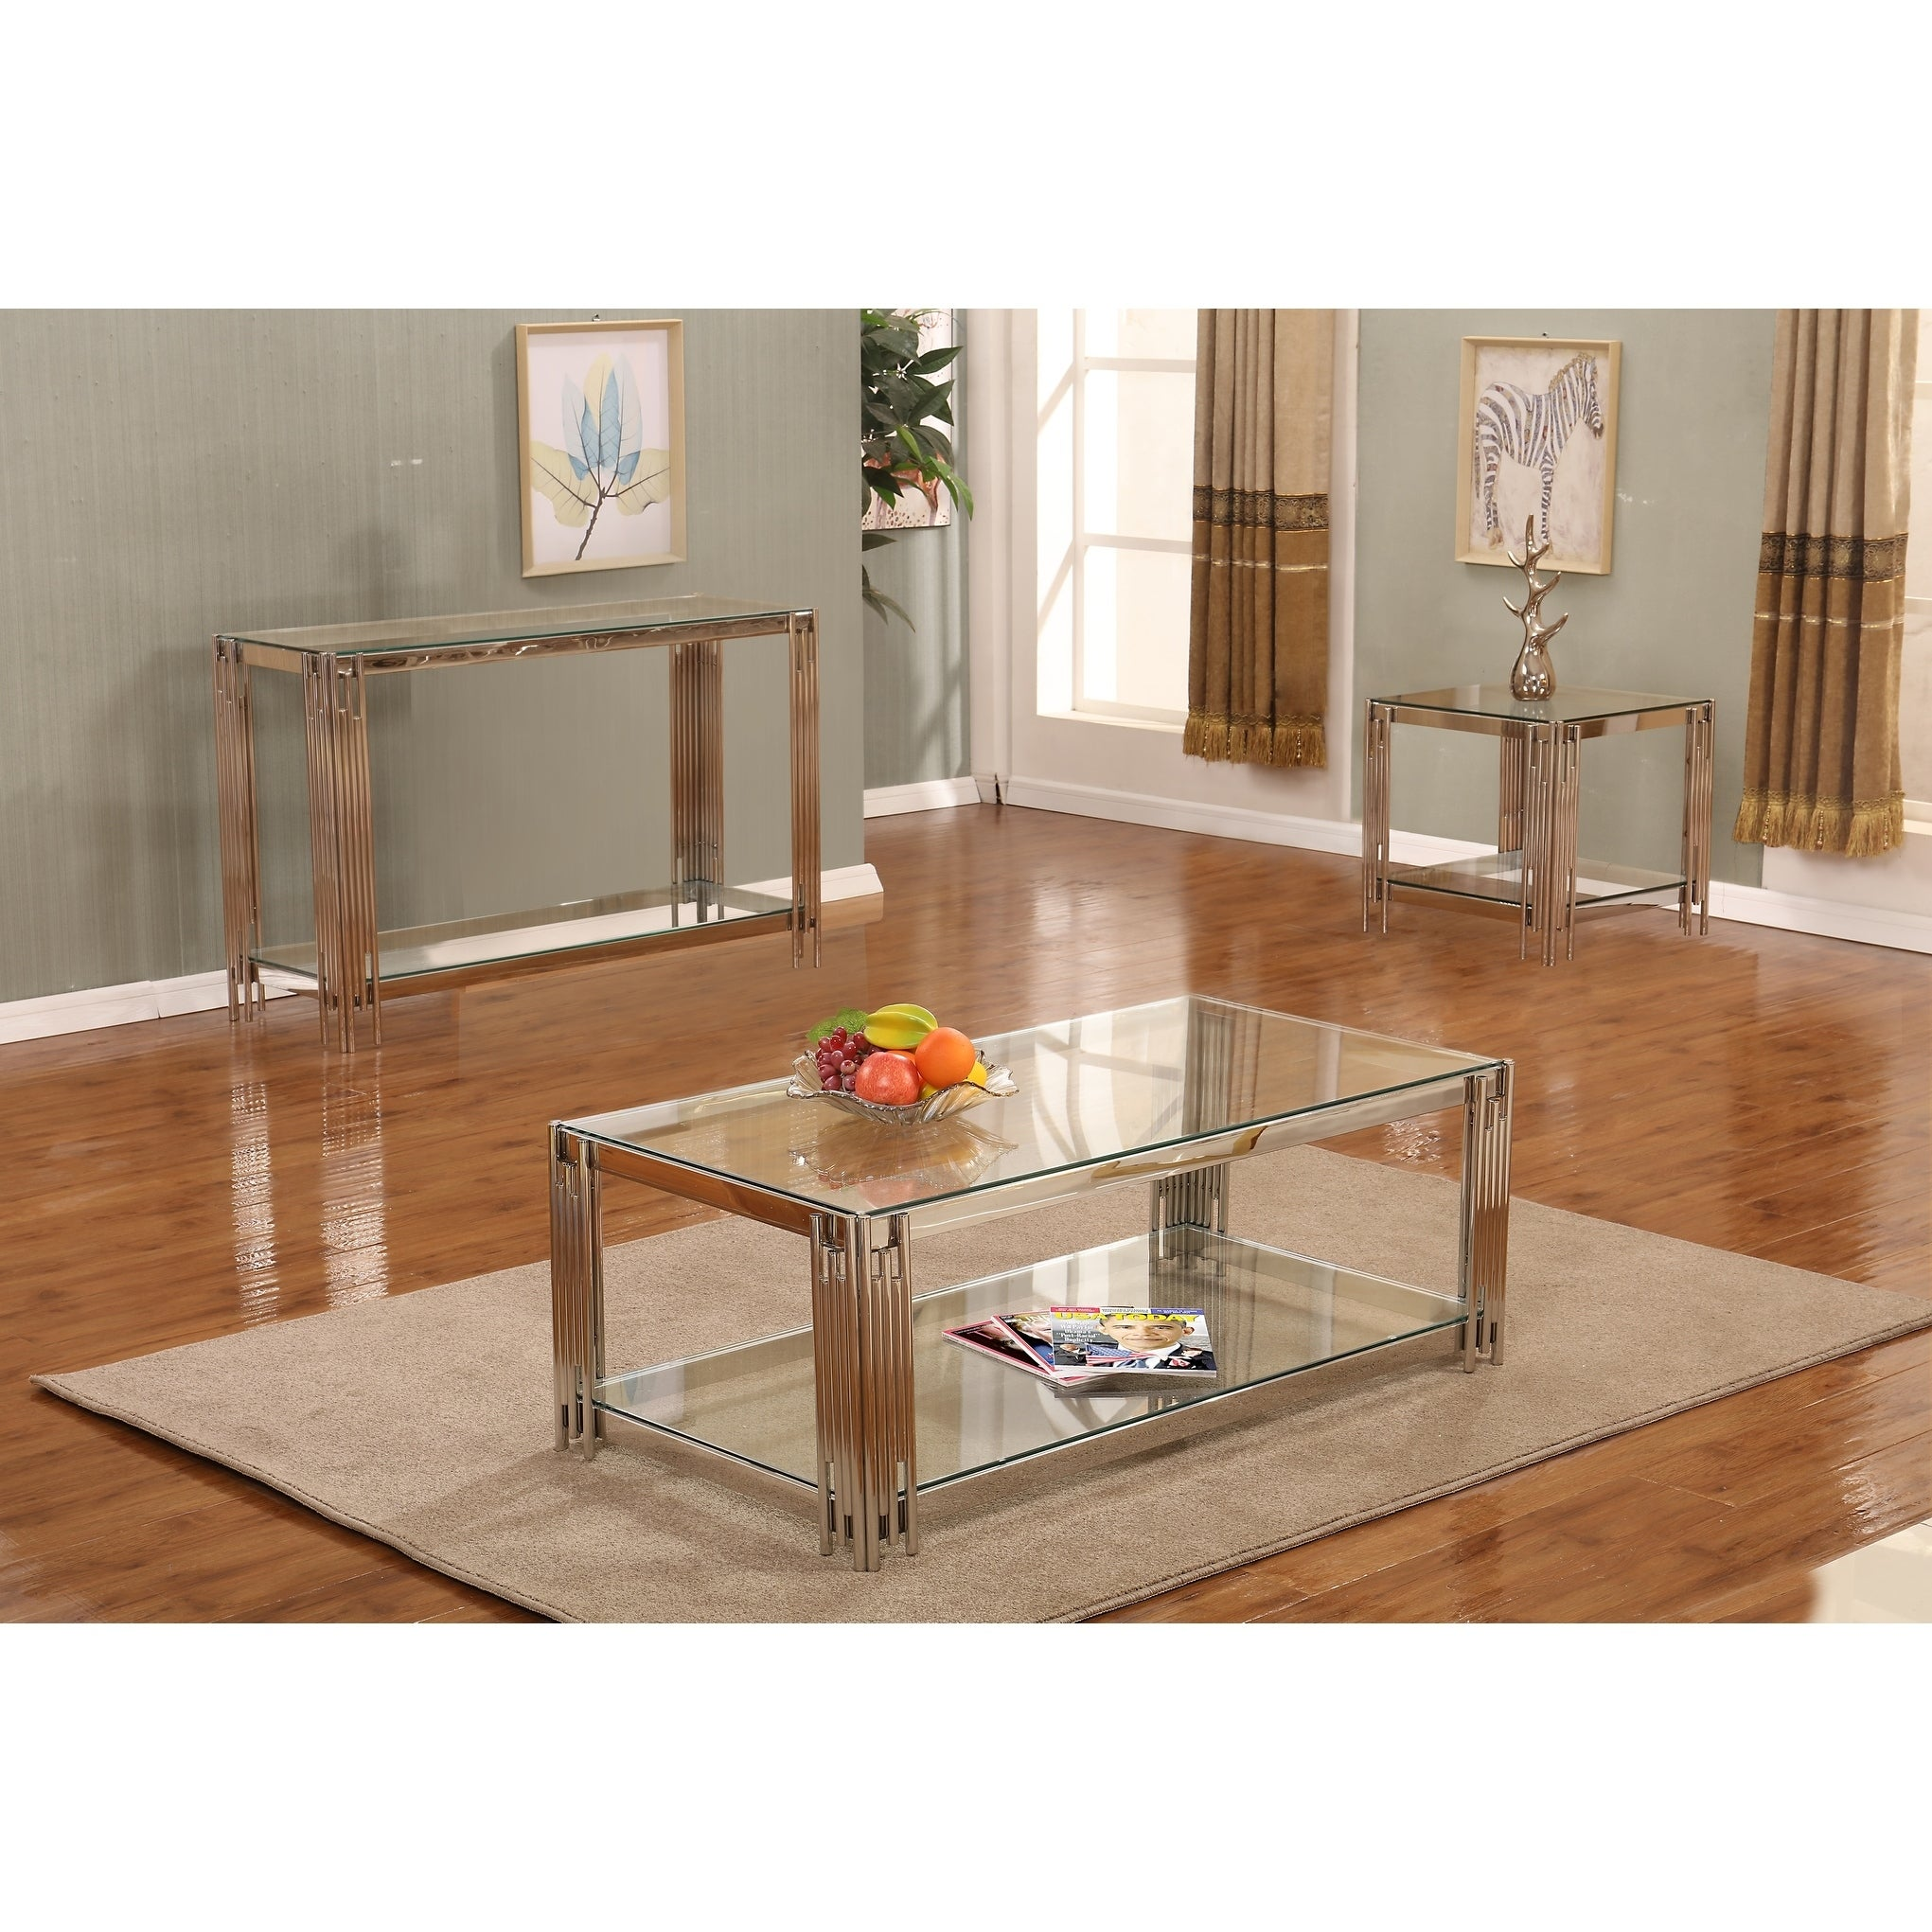 Fabulous Best Quality Furniture 3 Piece Glass Top Coffee Console And End Table Set Caraccident5 Cool Chair Designs And Ideas Caraccident5Info